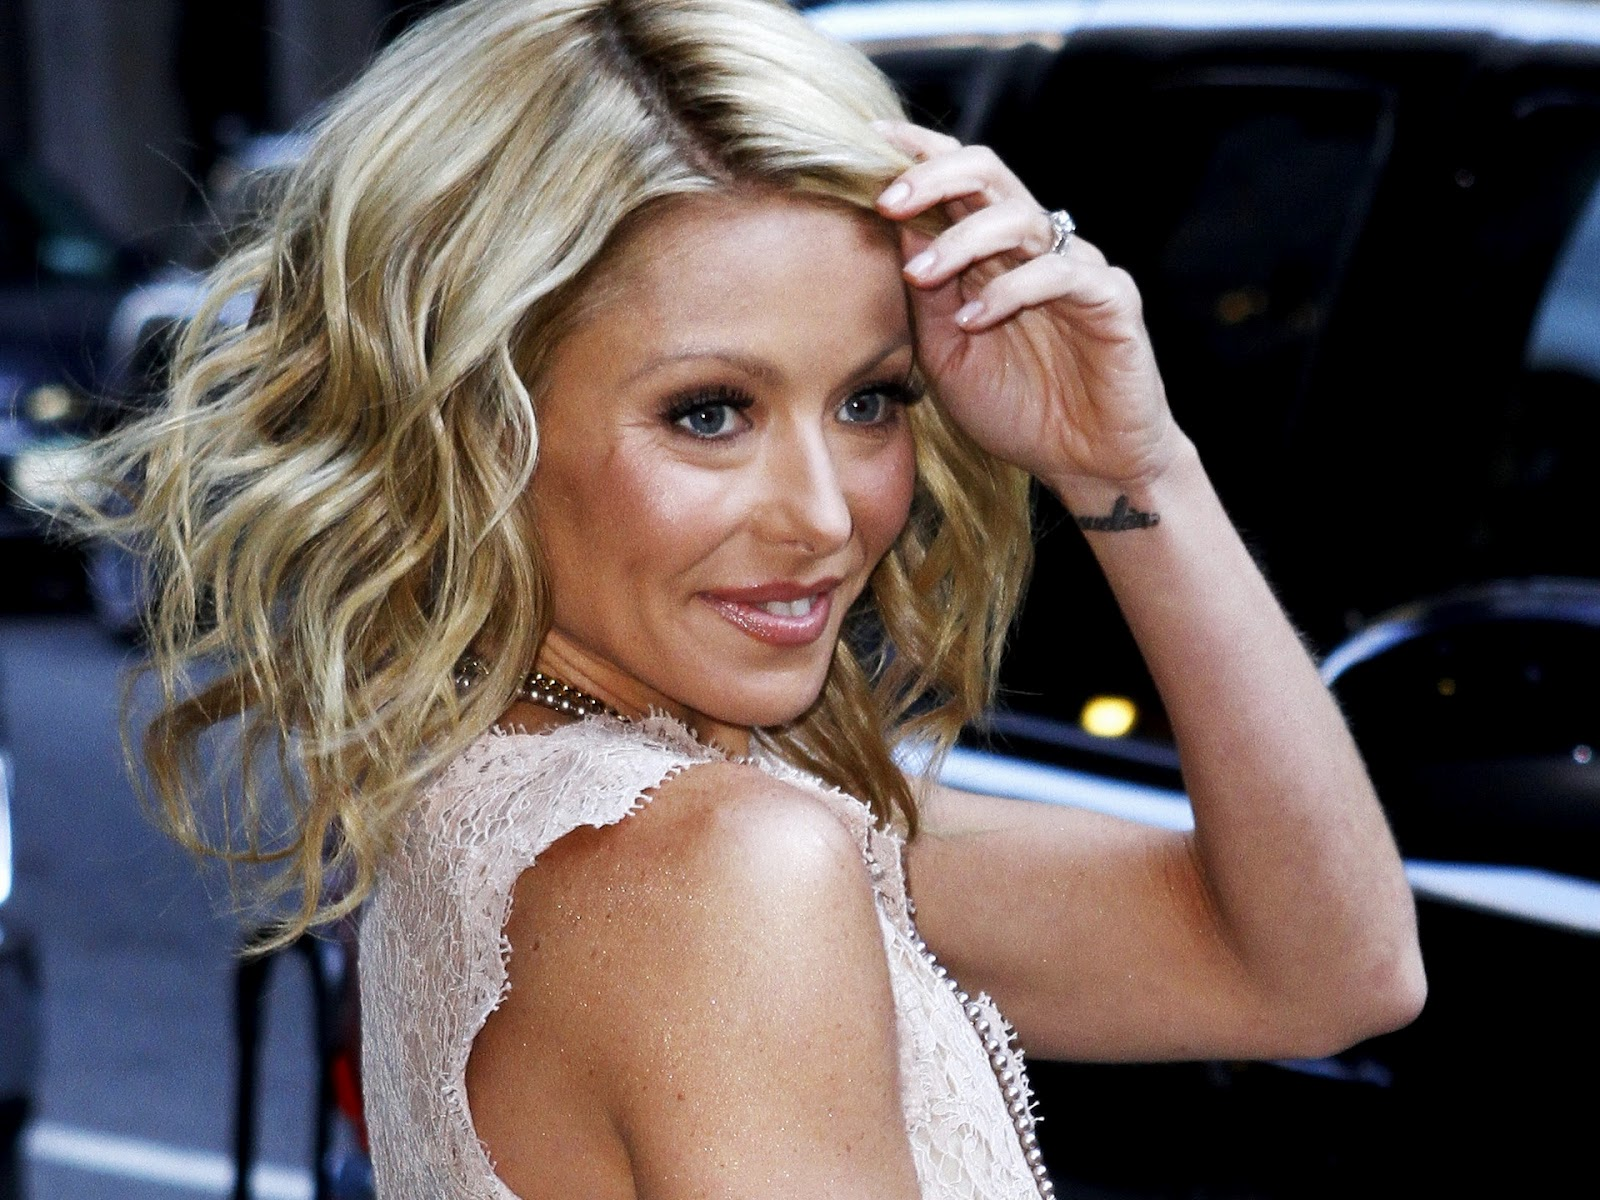 Kelly Ripa Cuts Her Hair Beauty & Fashion Articles & Trends